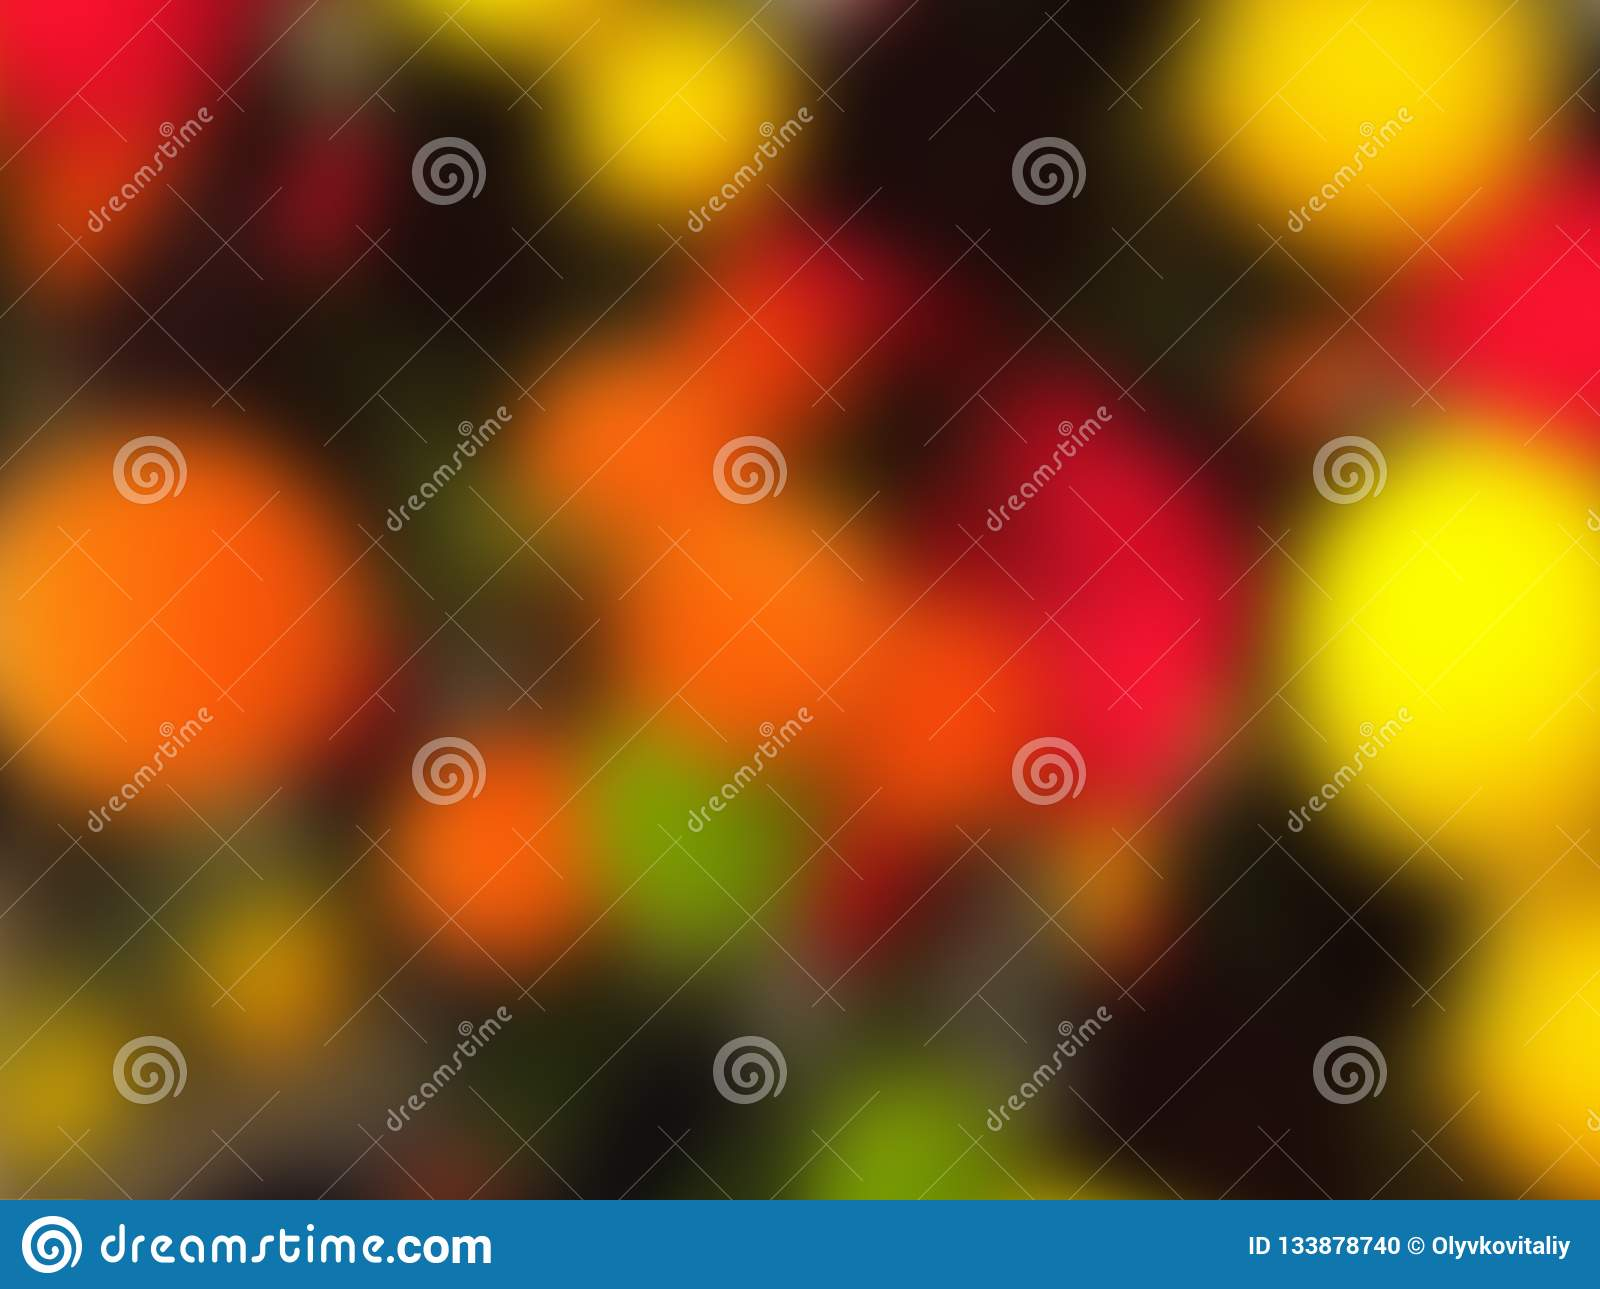 Blur background. Abstract multicolored colorful circles. Copy space